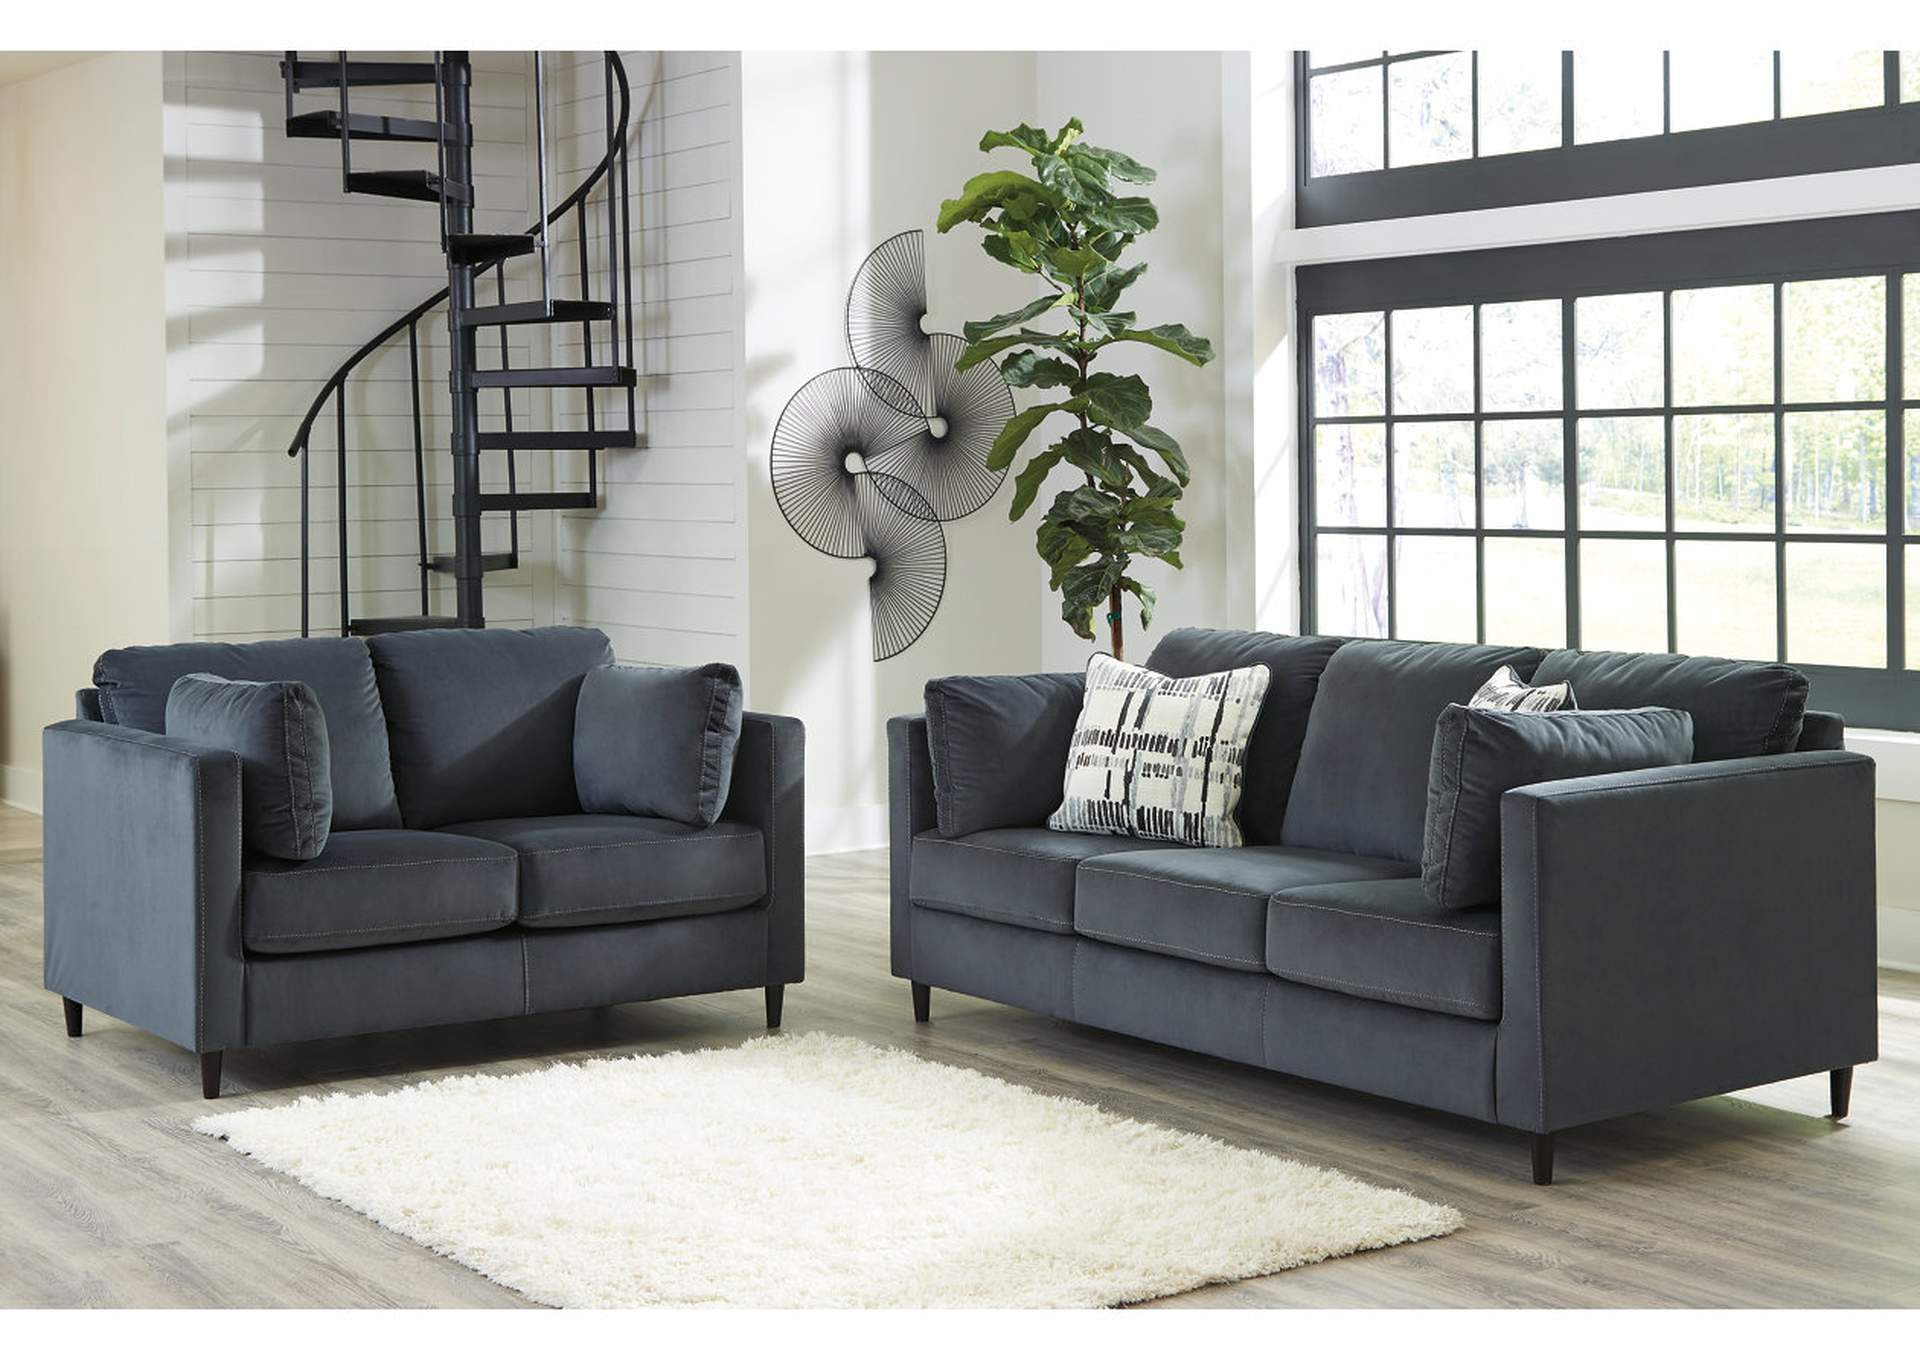 Kennewick Shadow Sofa and Loveseat,Signature Design By Ashley